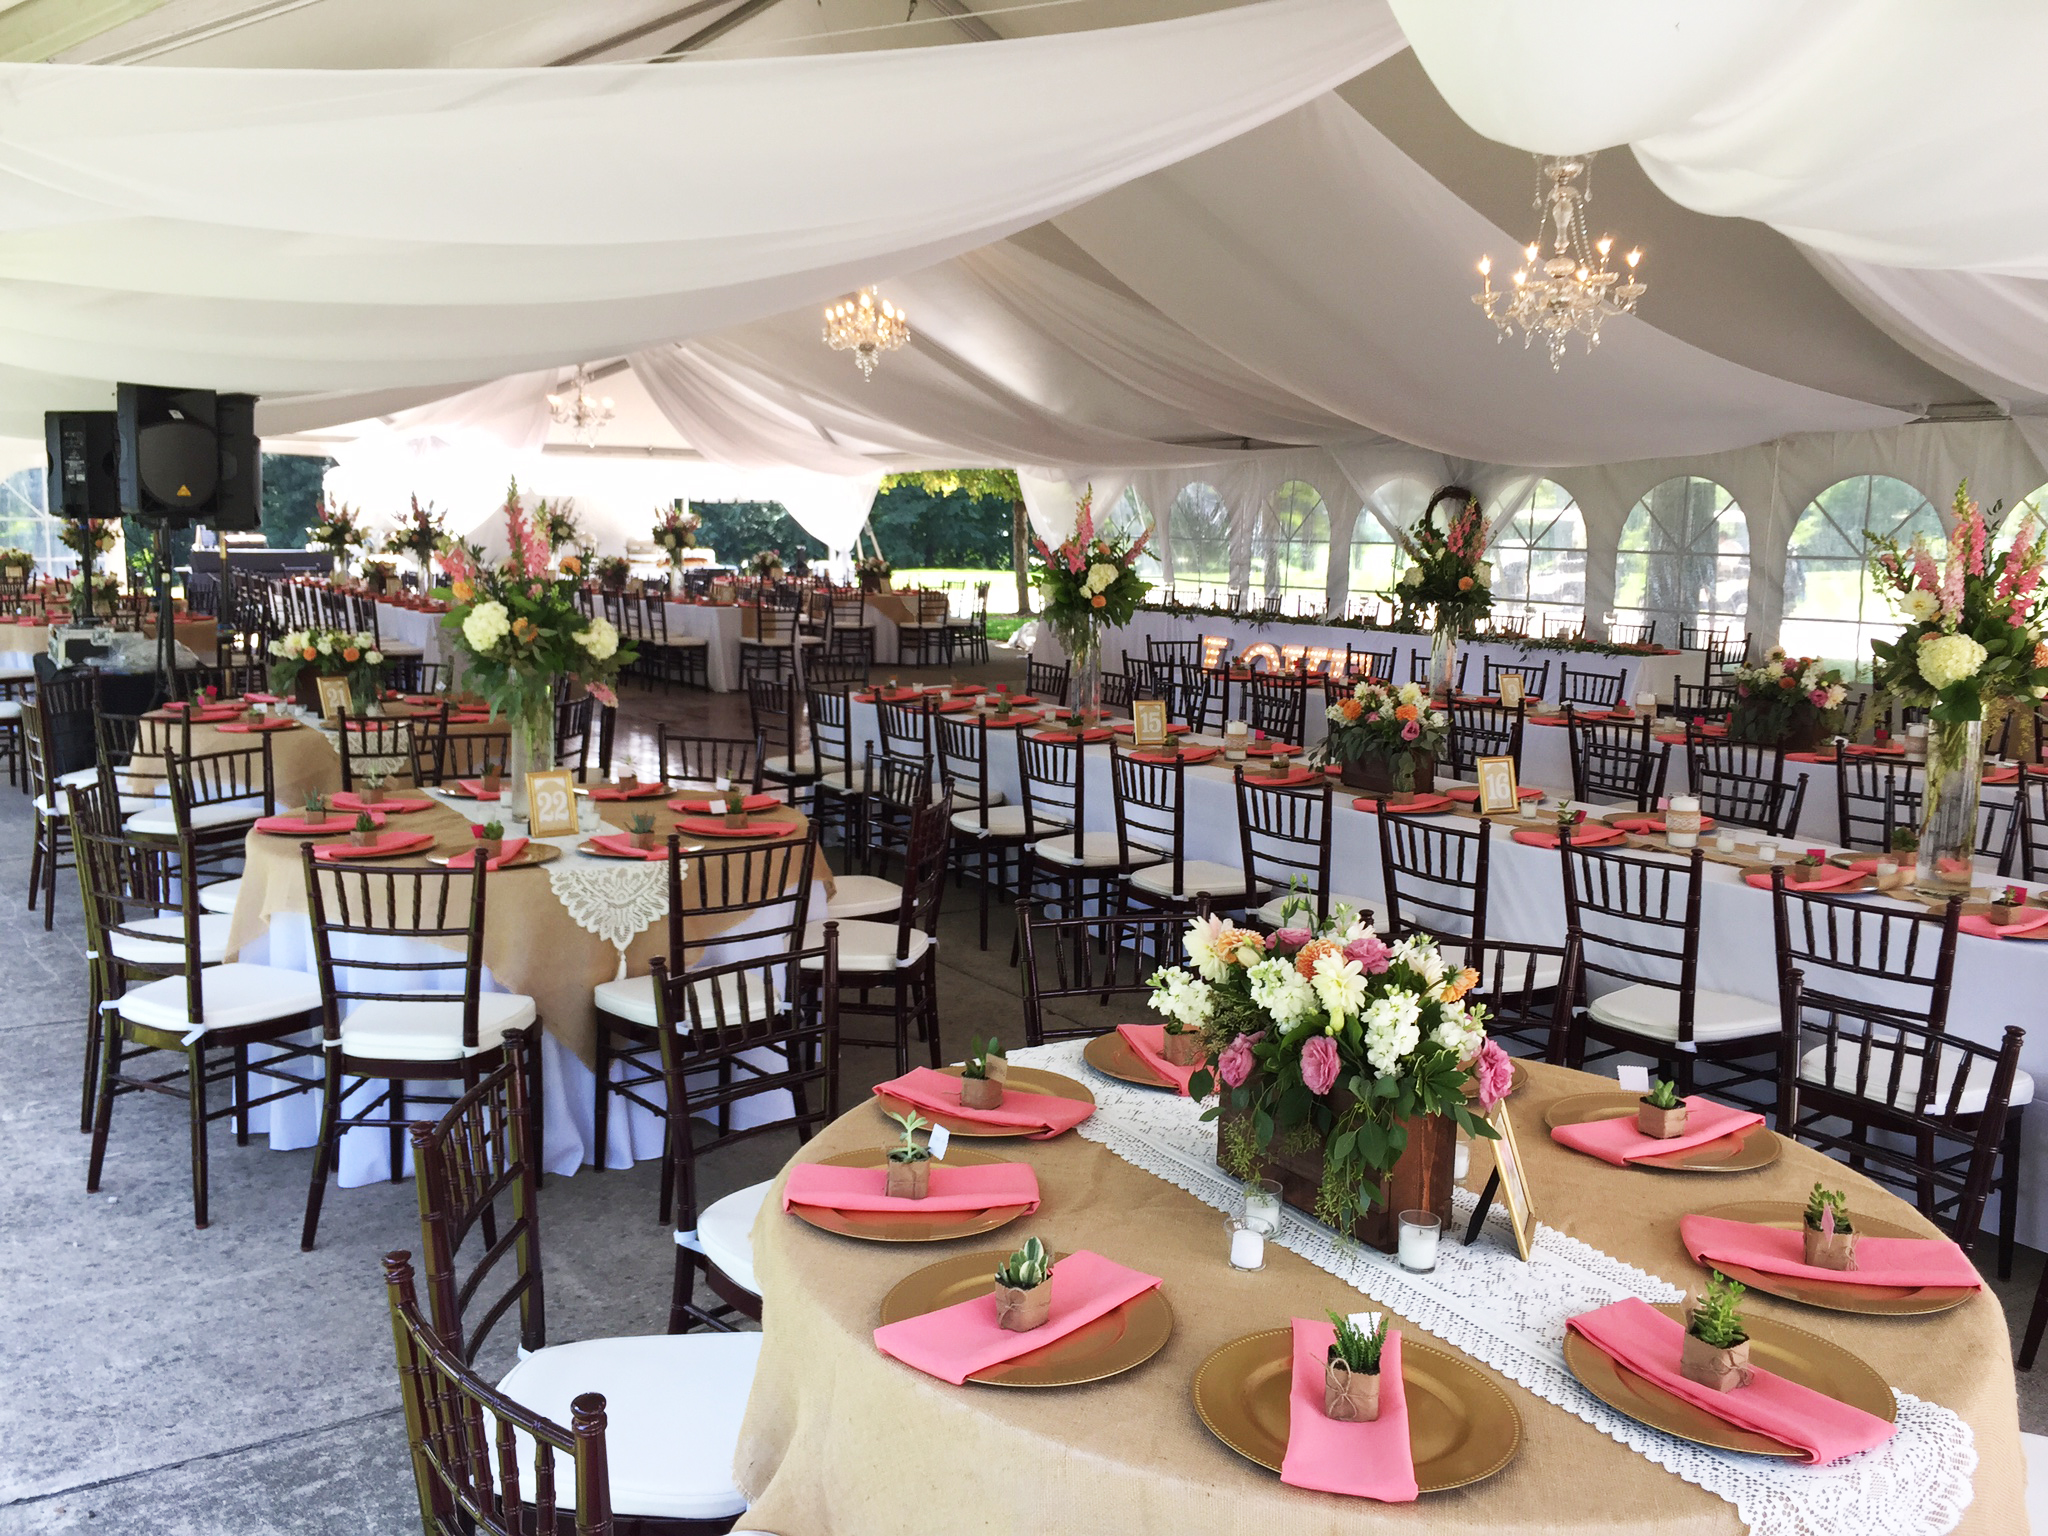 40 39 x 80 39 hybrid event tent structure rental iowa il mo wi. Black Bedroom Furniture Sets. Home Design Ideas